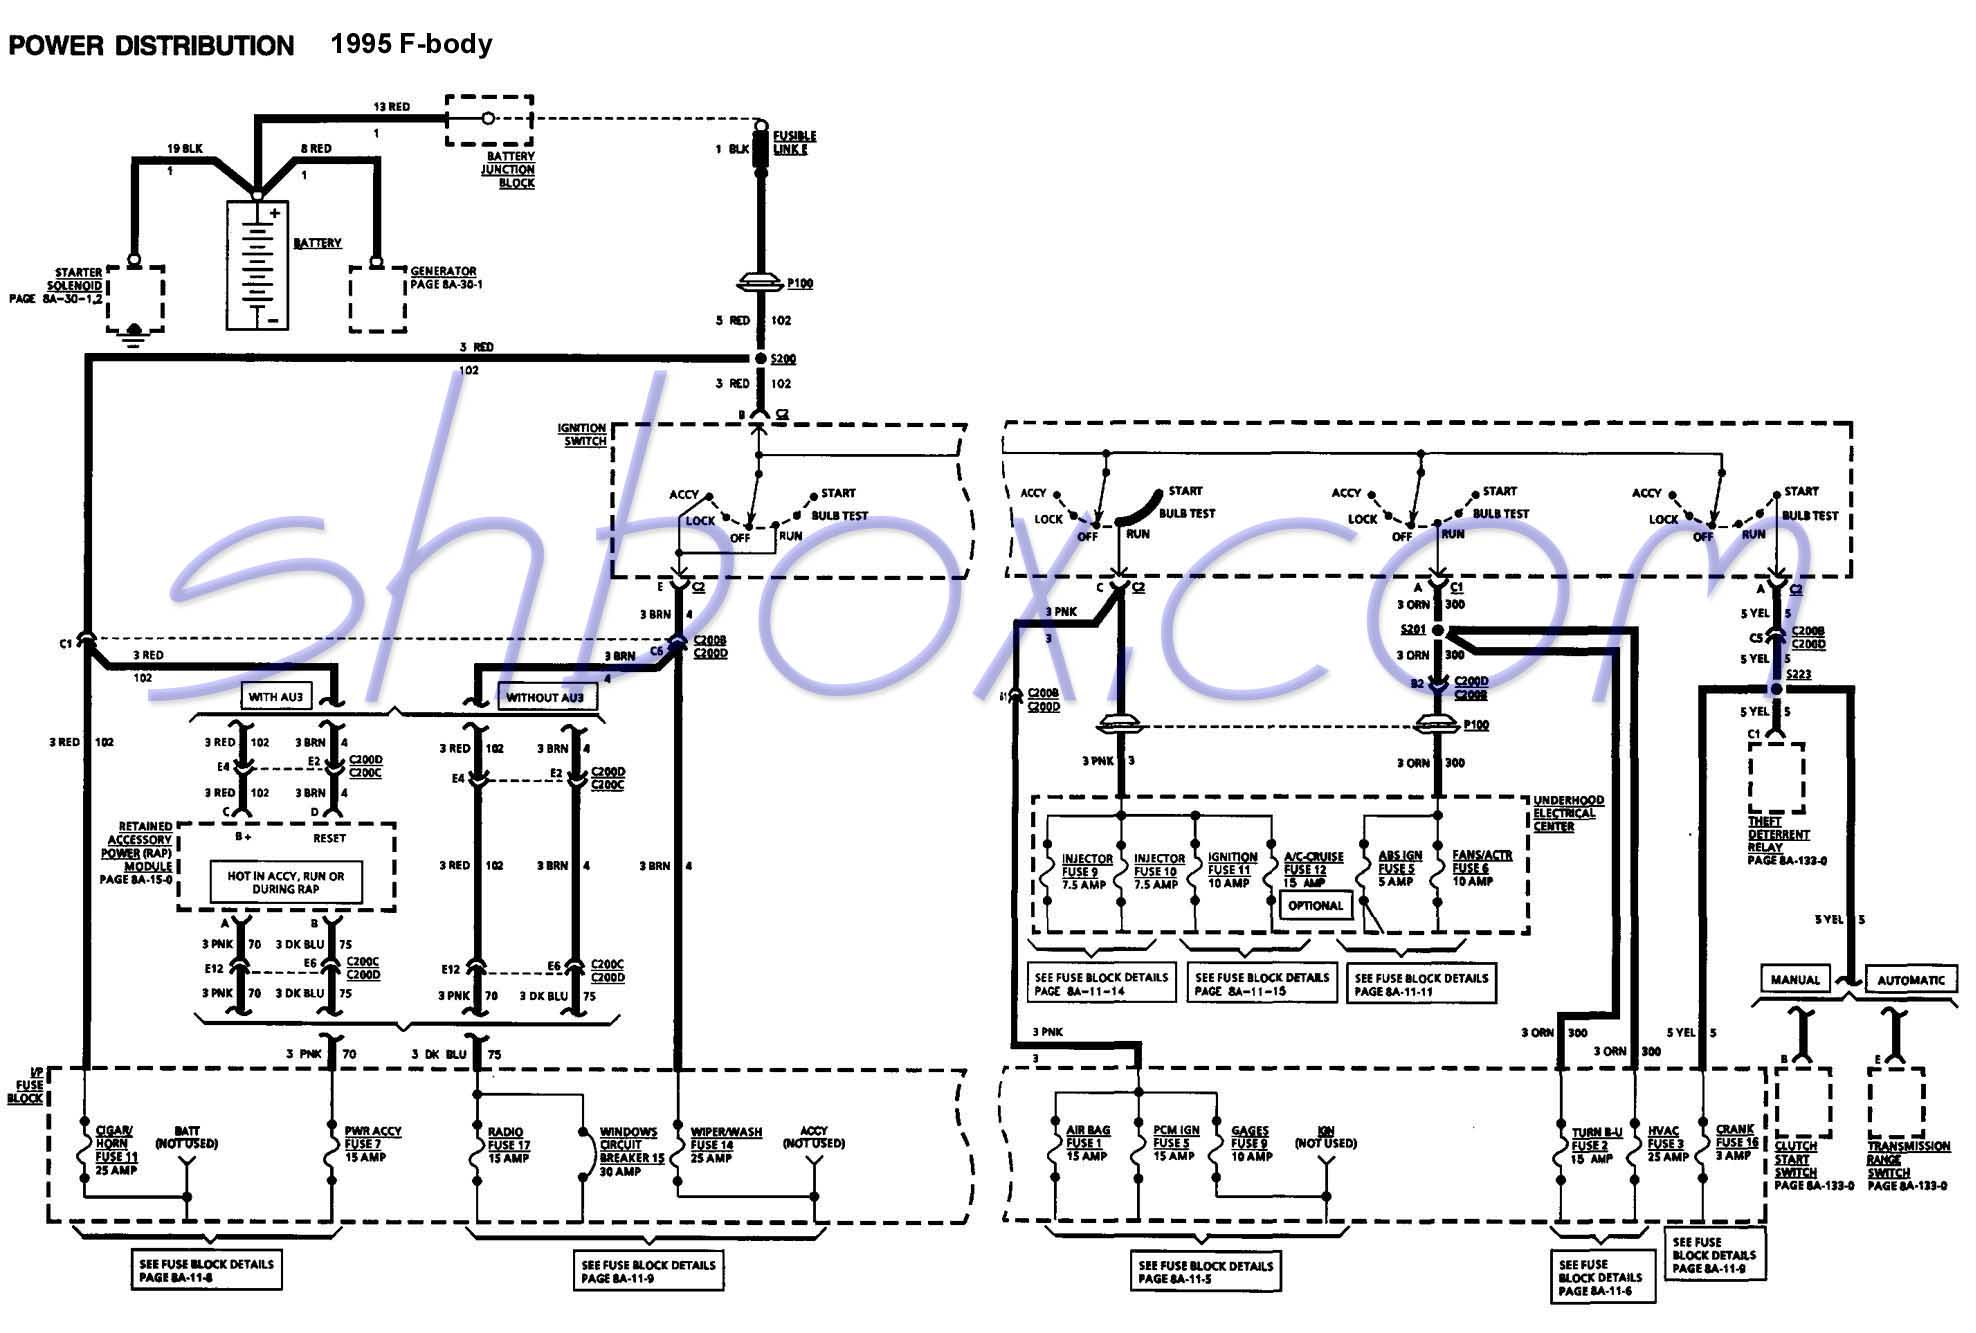 1996 club car wiring diagram 48 volt fire alarm 94 3.4 v6 camaro no spark urgent!!!!! - page 3 forums chevy enthusiast forum